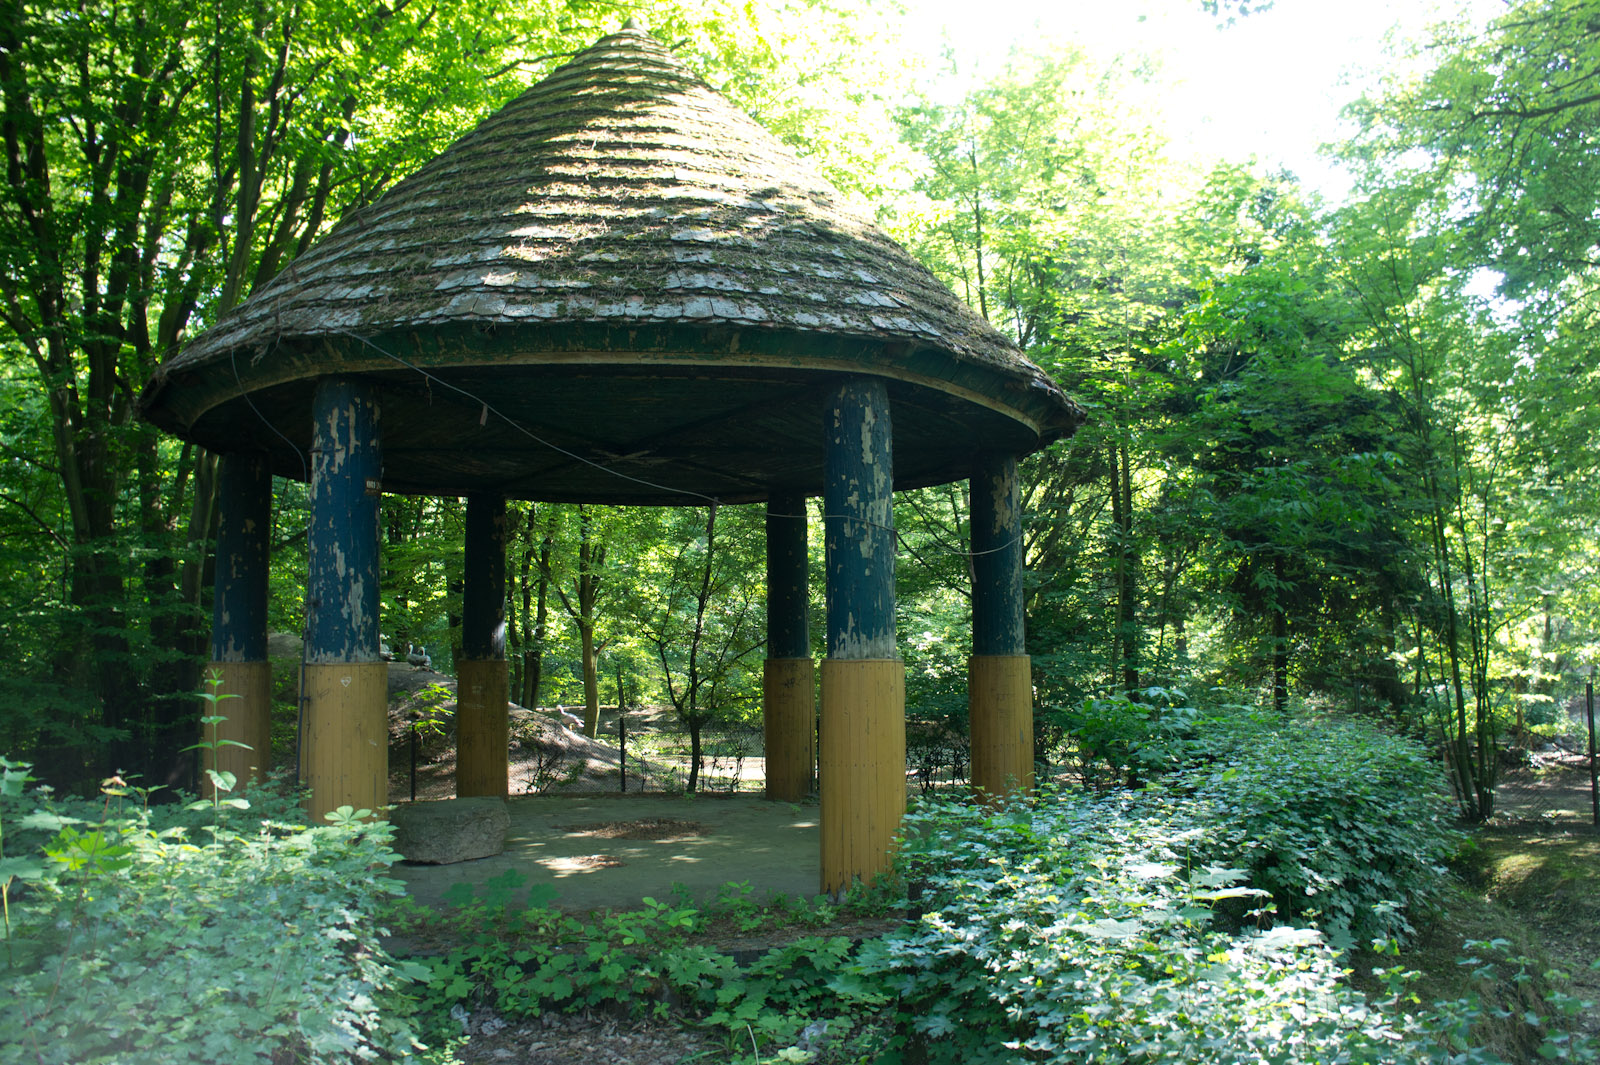 The historical gazebo in the zoo of Łódź is getting well neglected